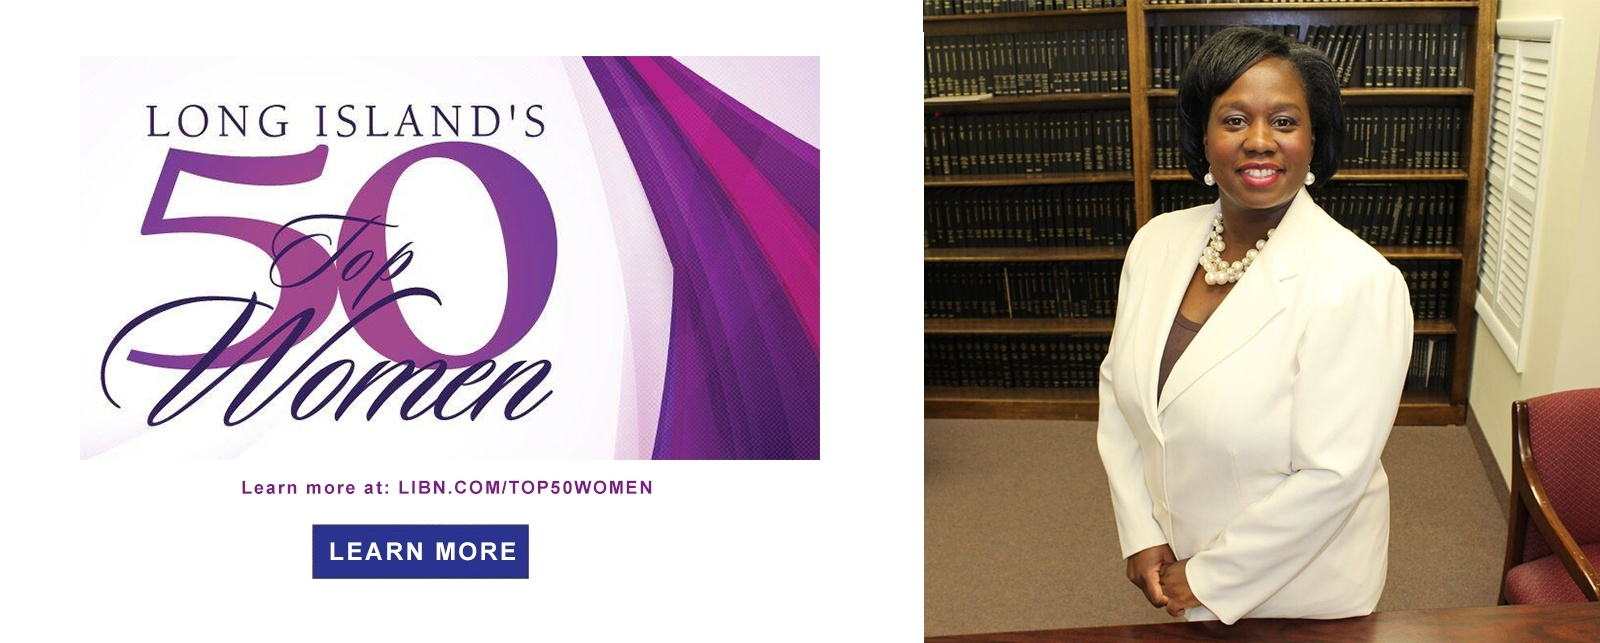 Long Island's 50 Top Women